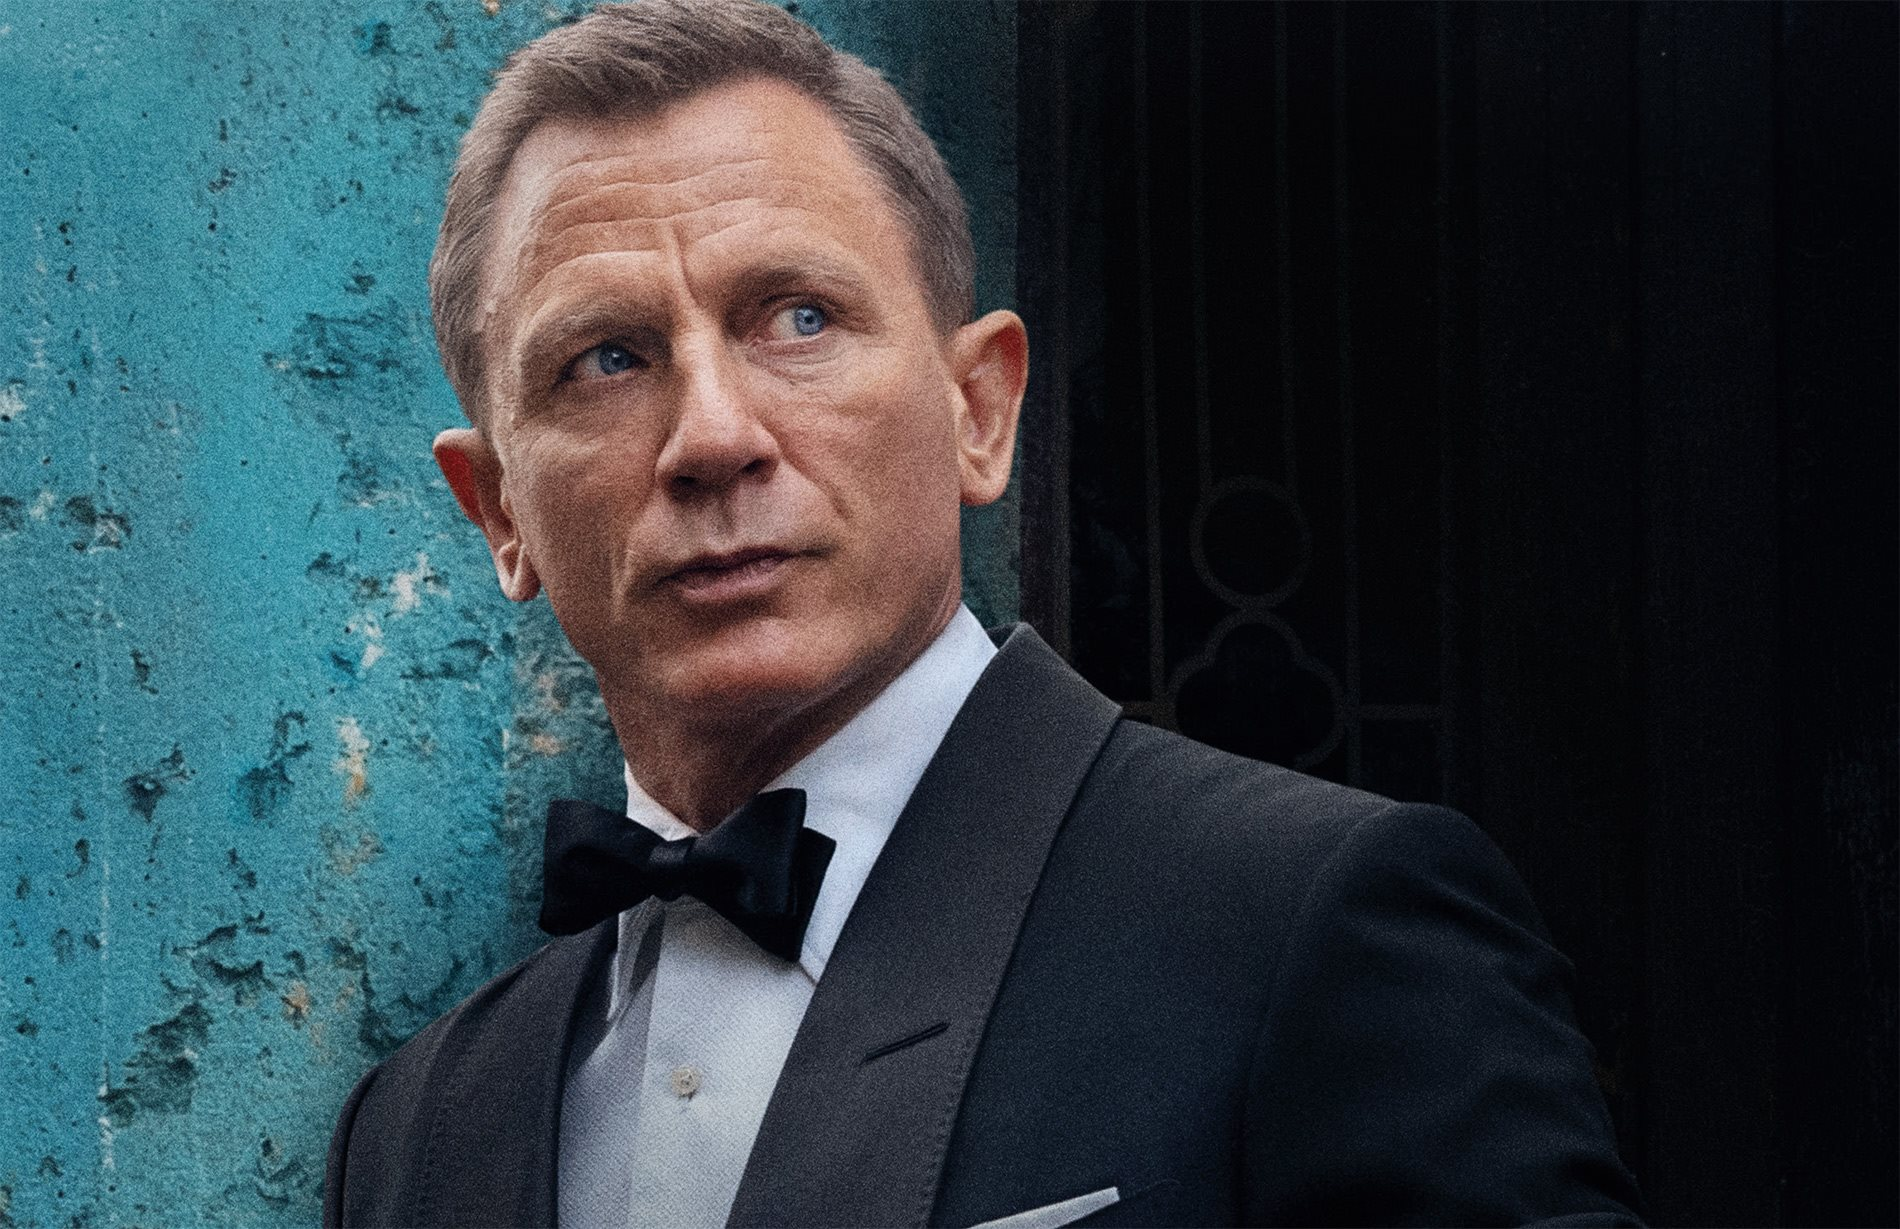 James Bond The secret to being Bond Heineken